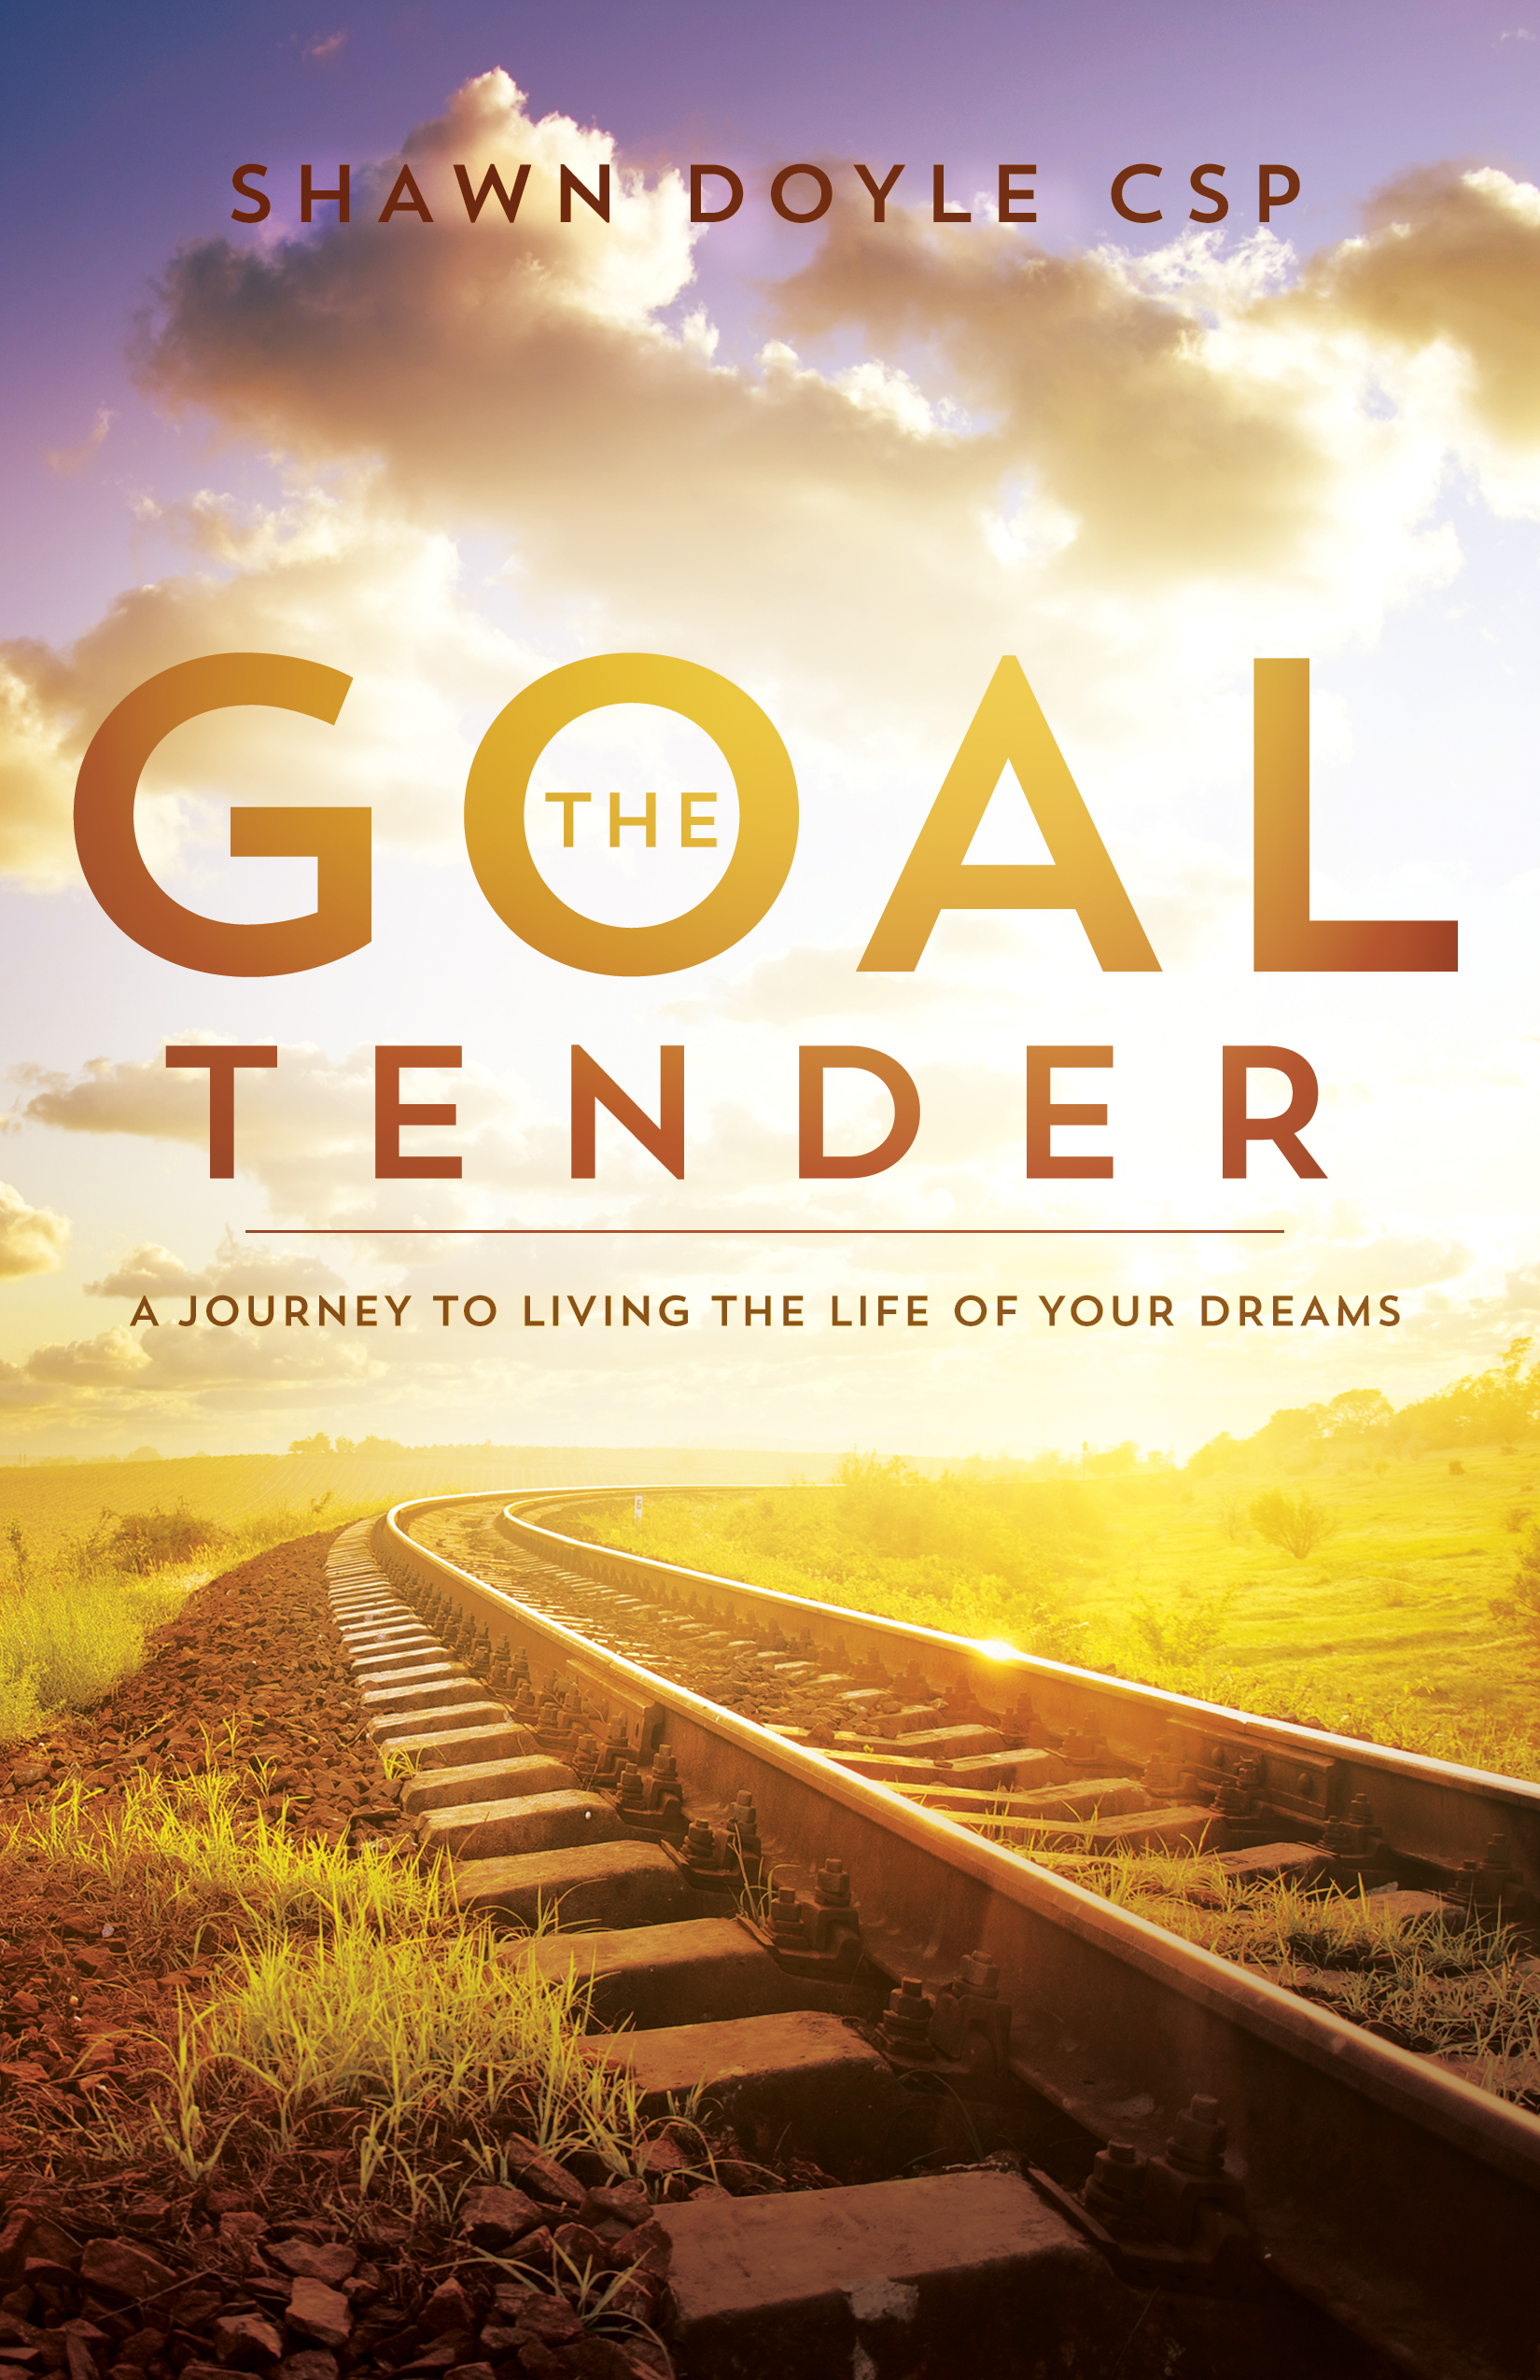 The Goal Tender - By shawn doyle csp